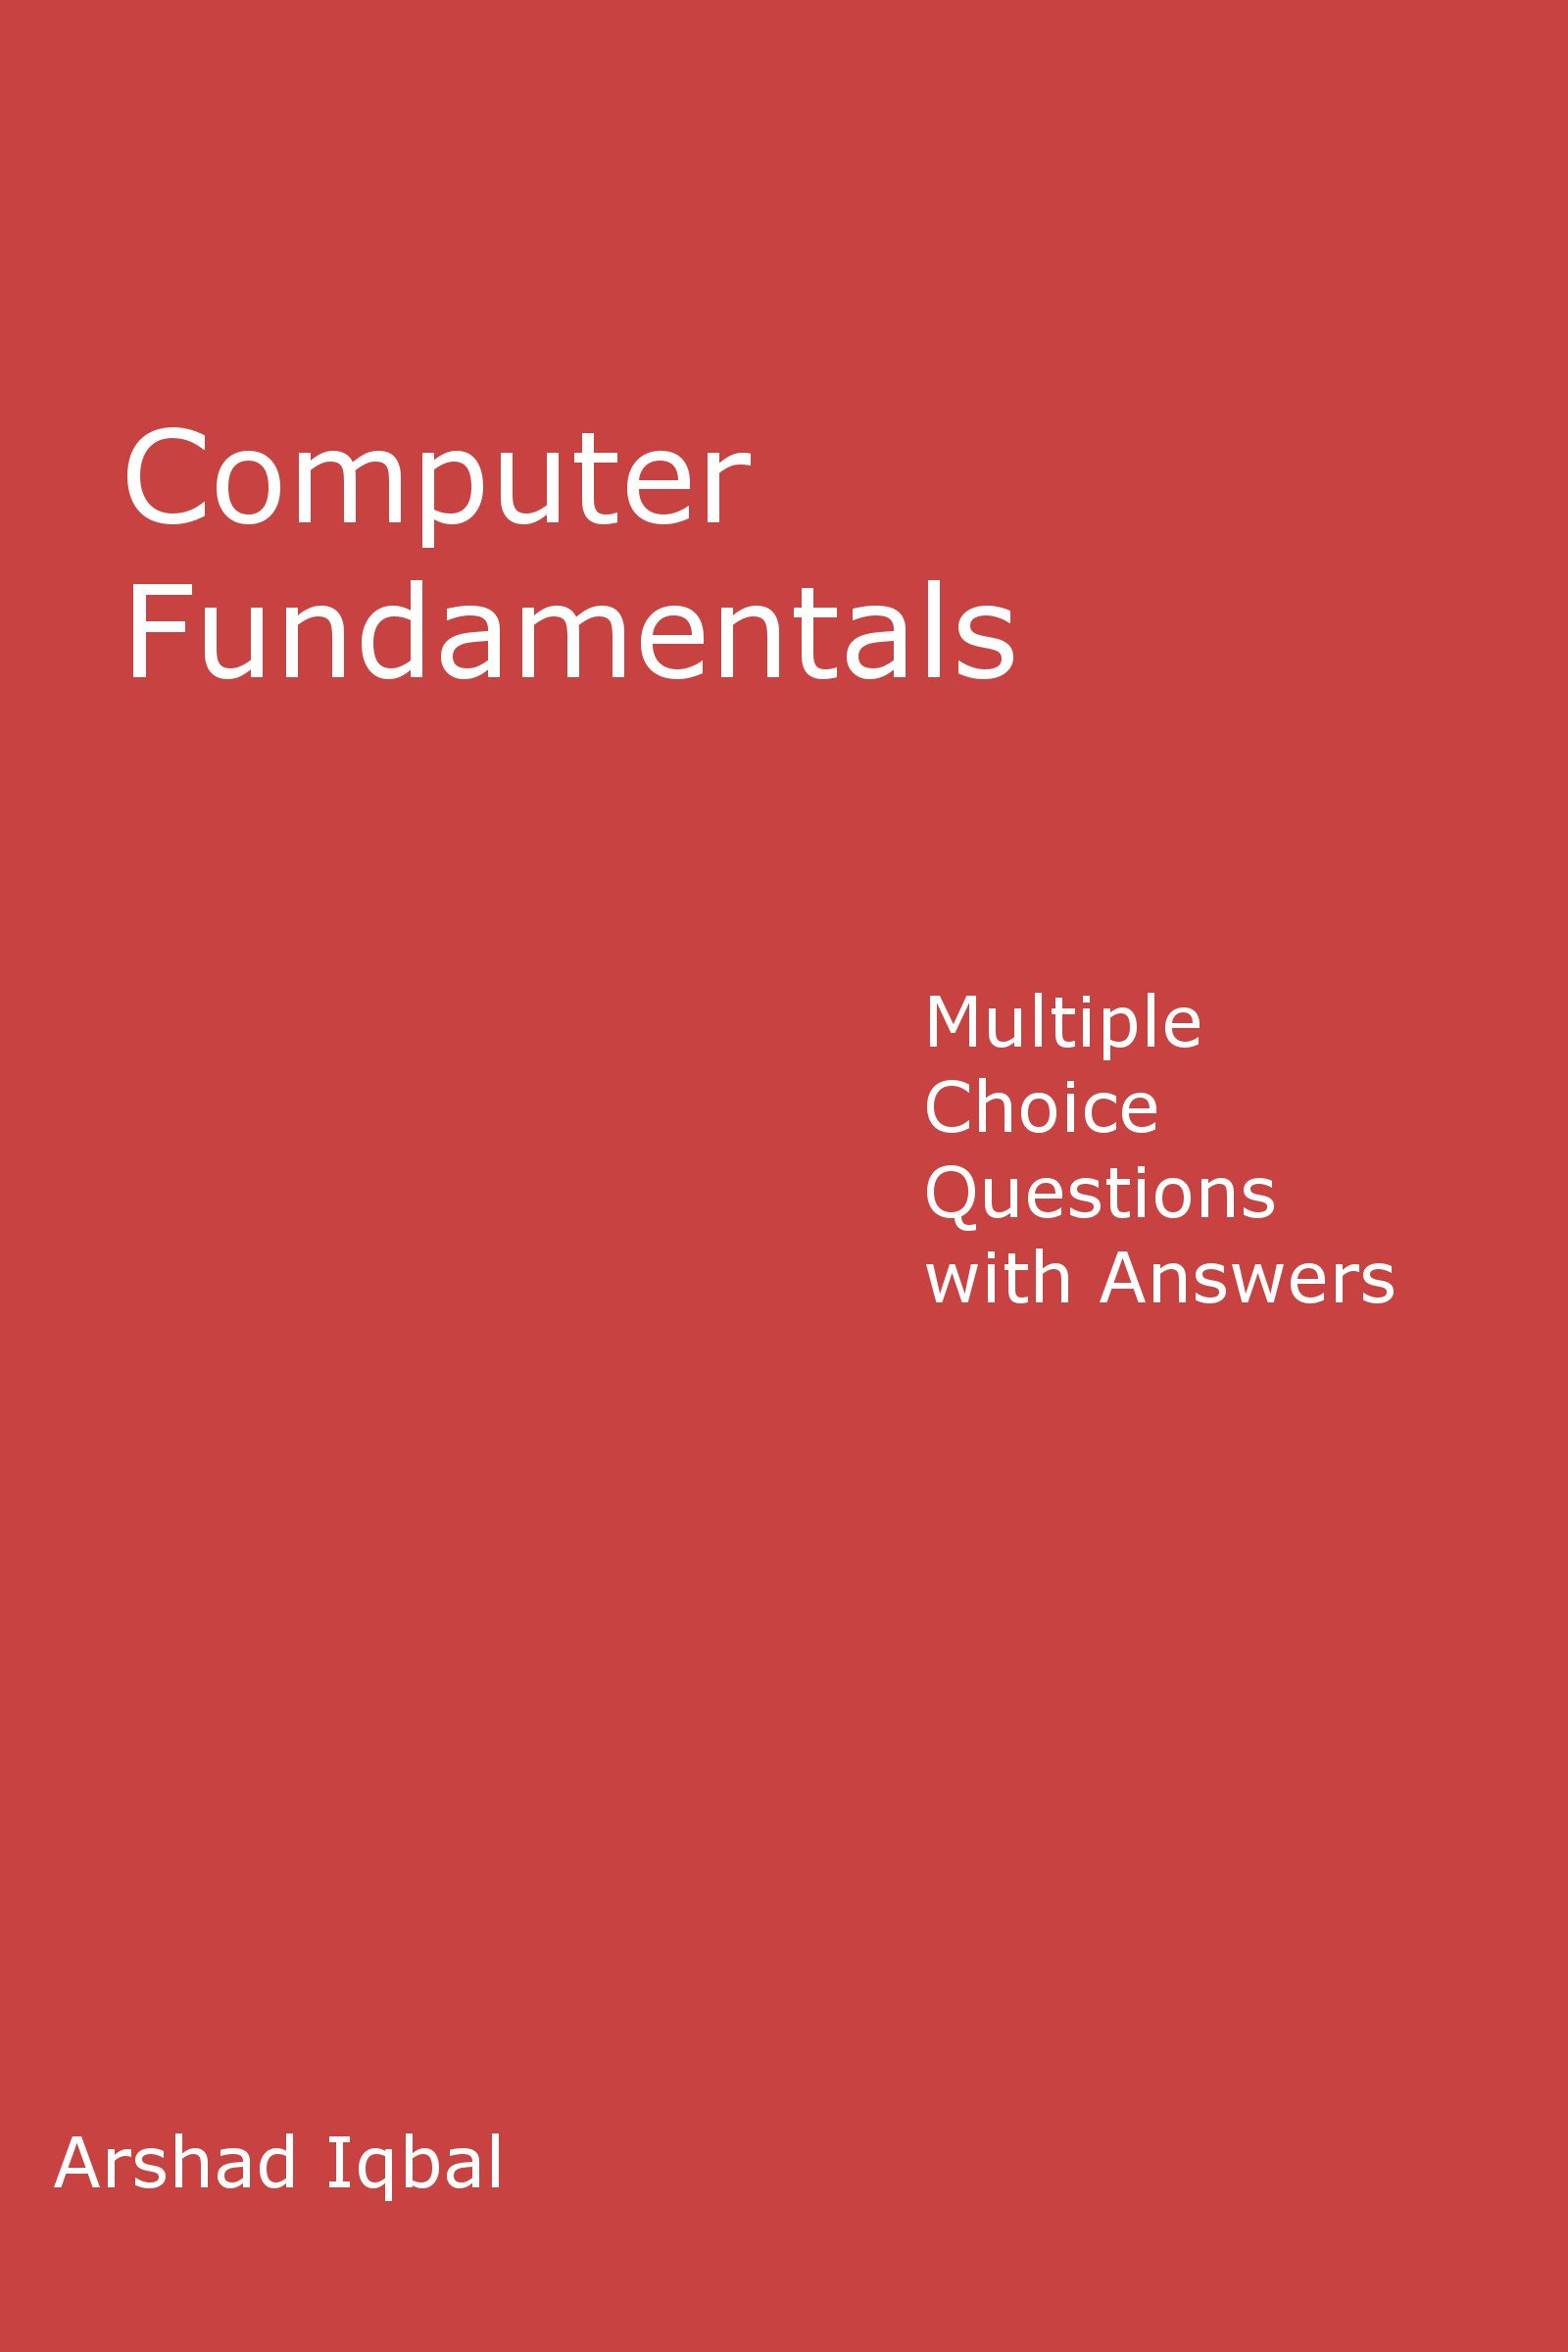 Computer Fundamentals Questions And Answers